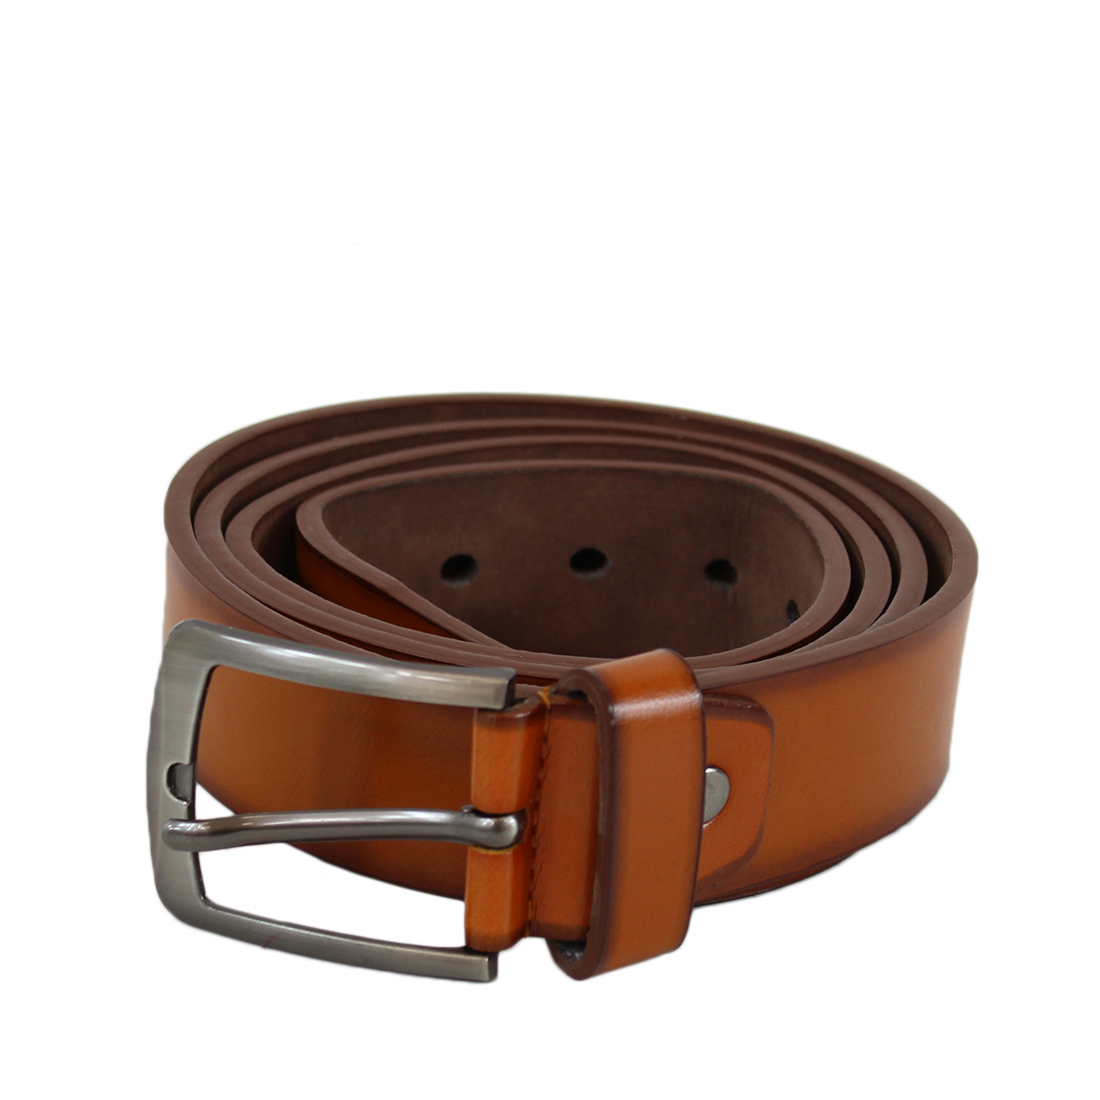 Plain wide leather belt with silver buckle